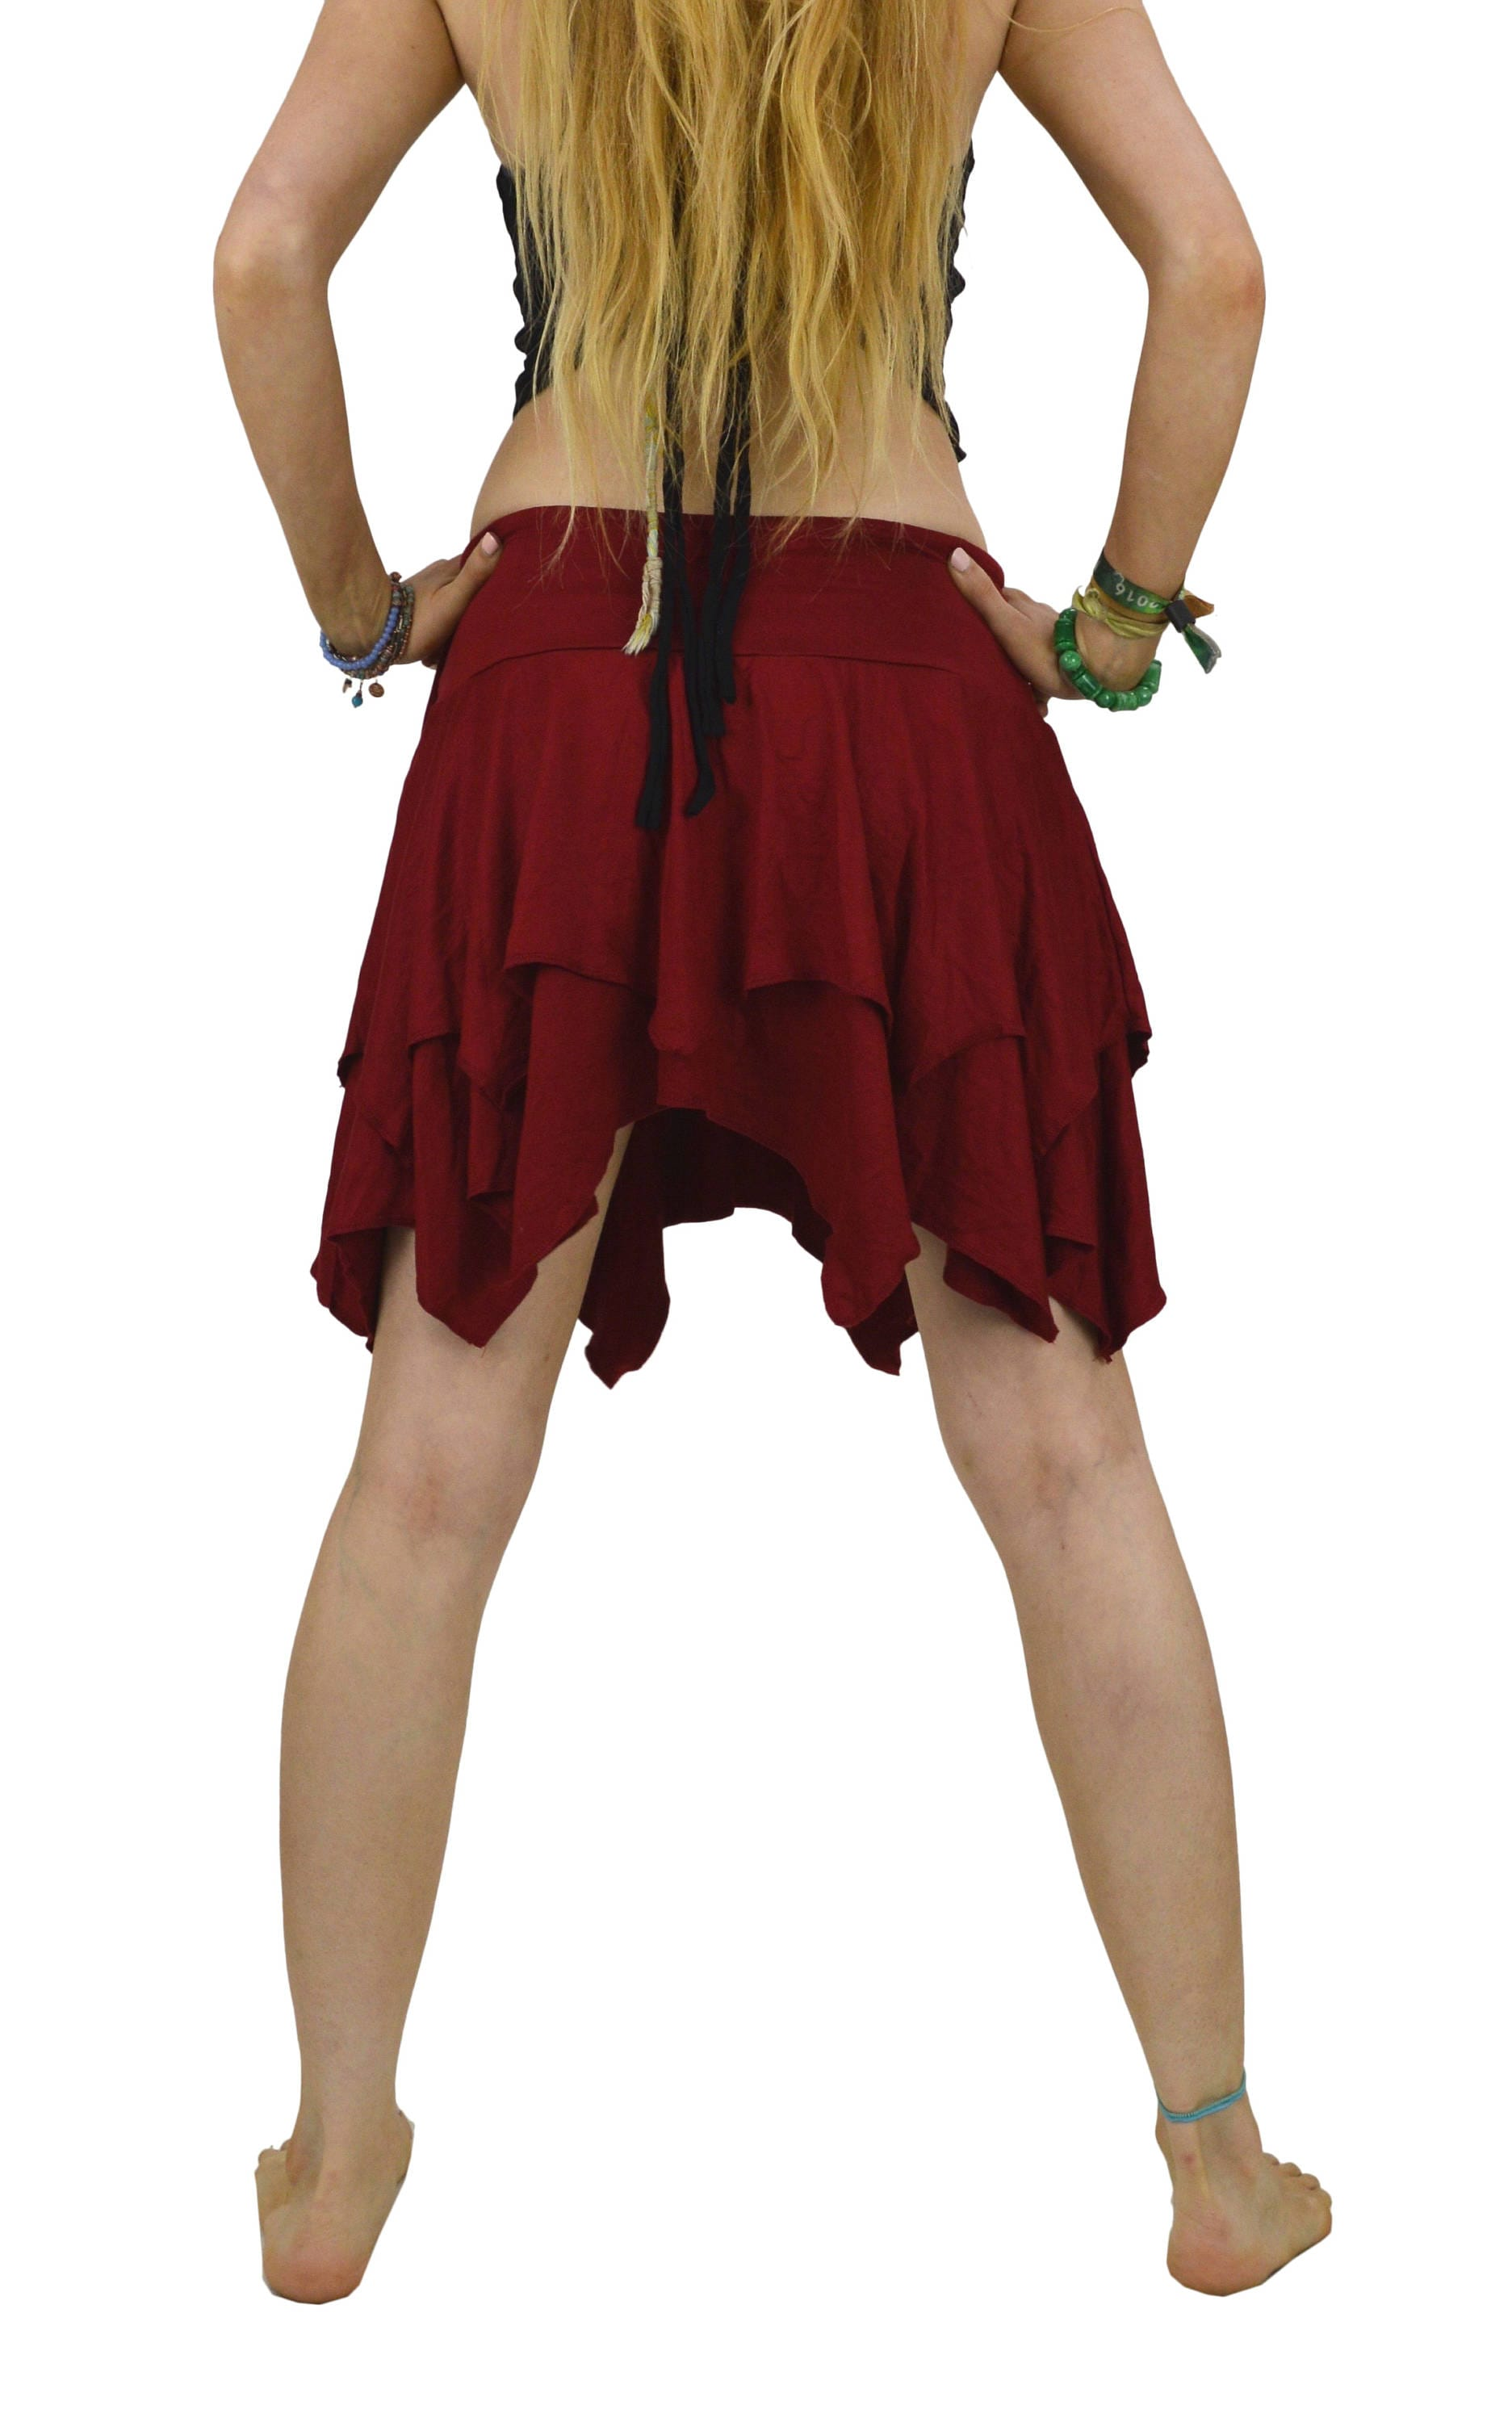 Not Clothing But Makeup Is Just As Important To Finish A: Pixie Skirt Tulle Skirt Pixie Clothing Hippie Clothes